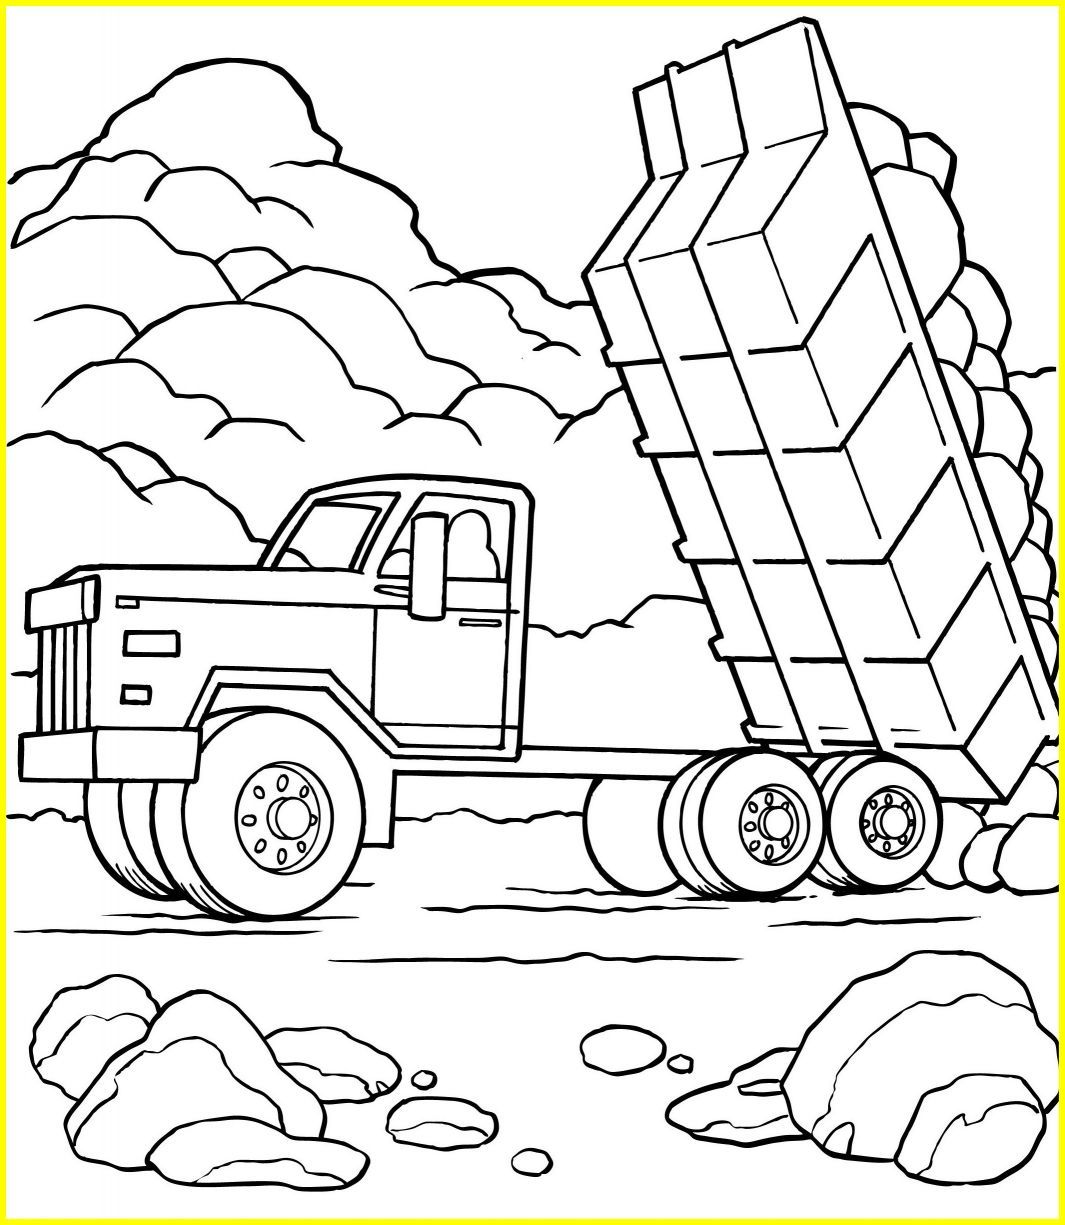 1065x1225 Awesome Fire Truck Coloring Page On Art For Printable Concept